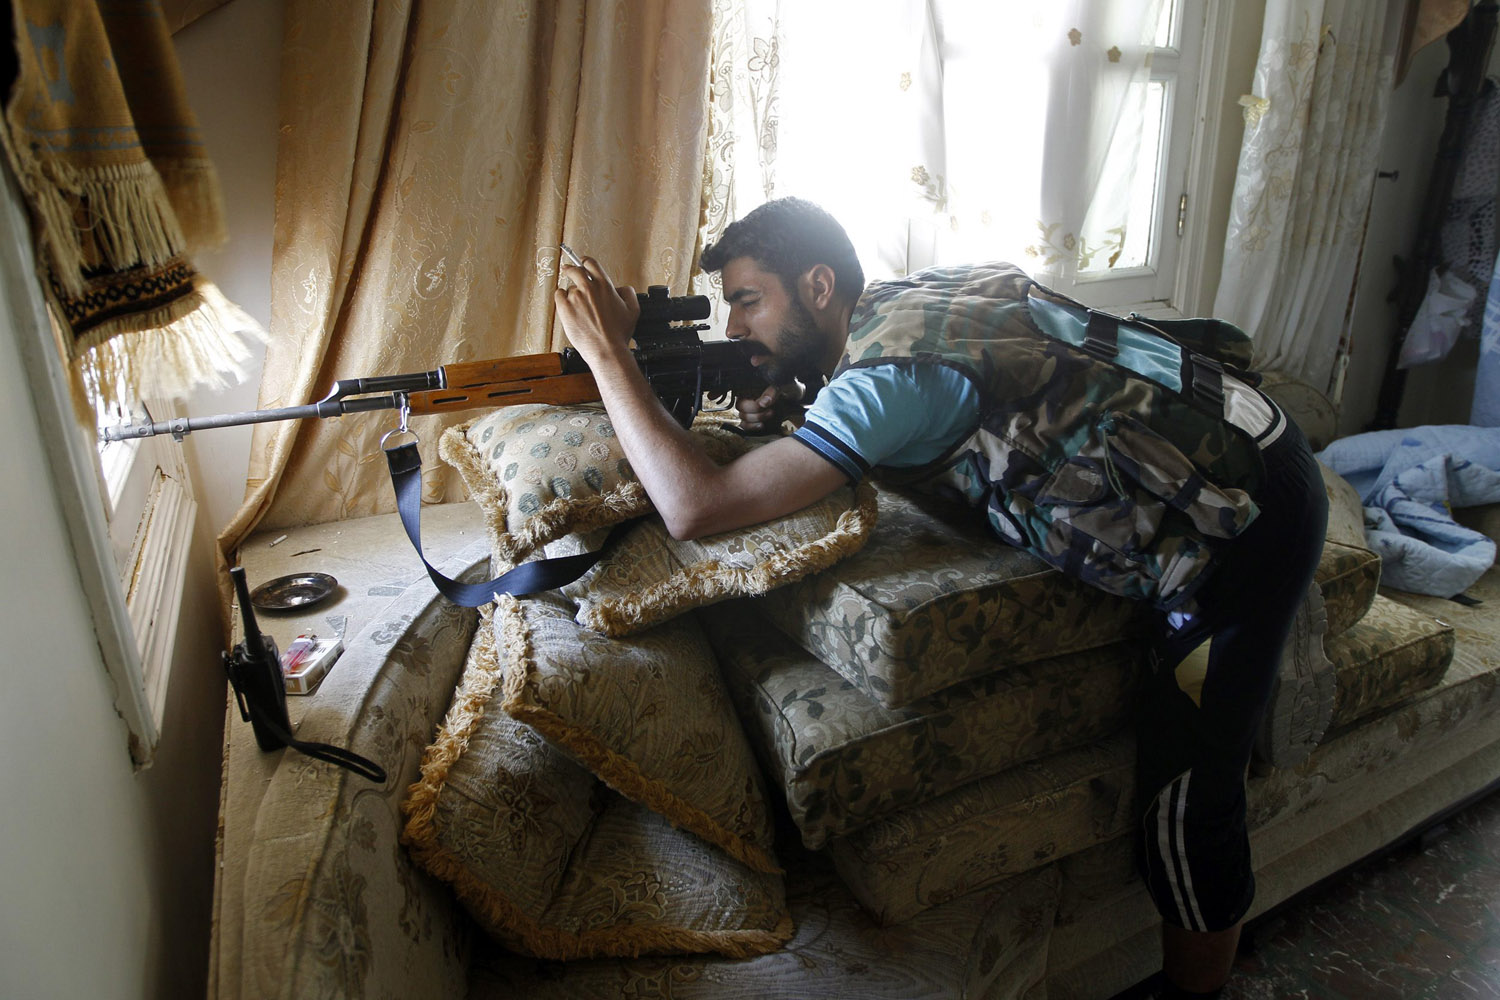 Aug. 13, 2012. A Free Syrian Army sniper looks through the sight on his rifle inside a house in Aleppo, Syria.